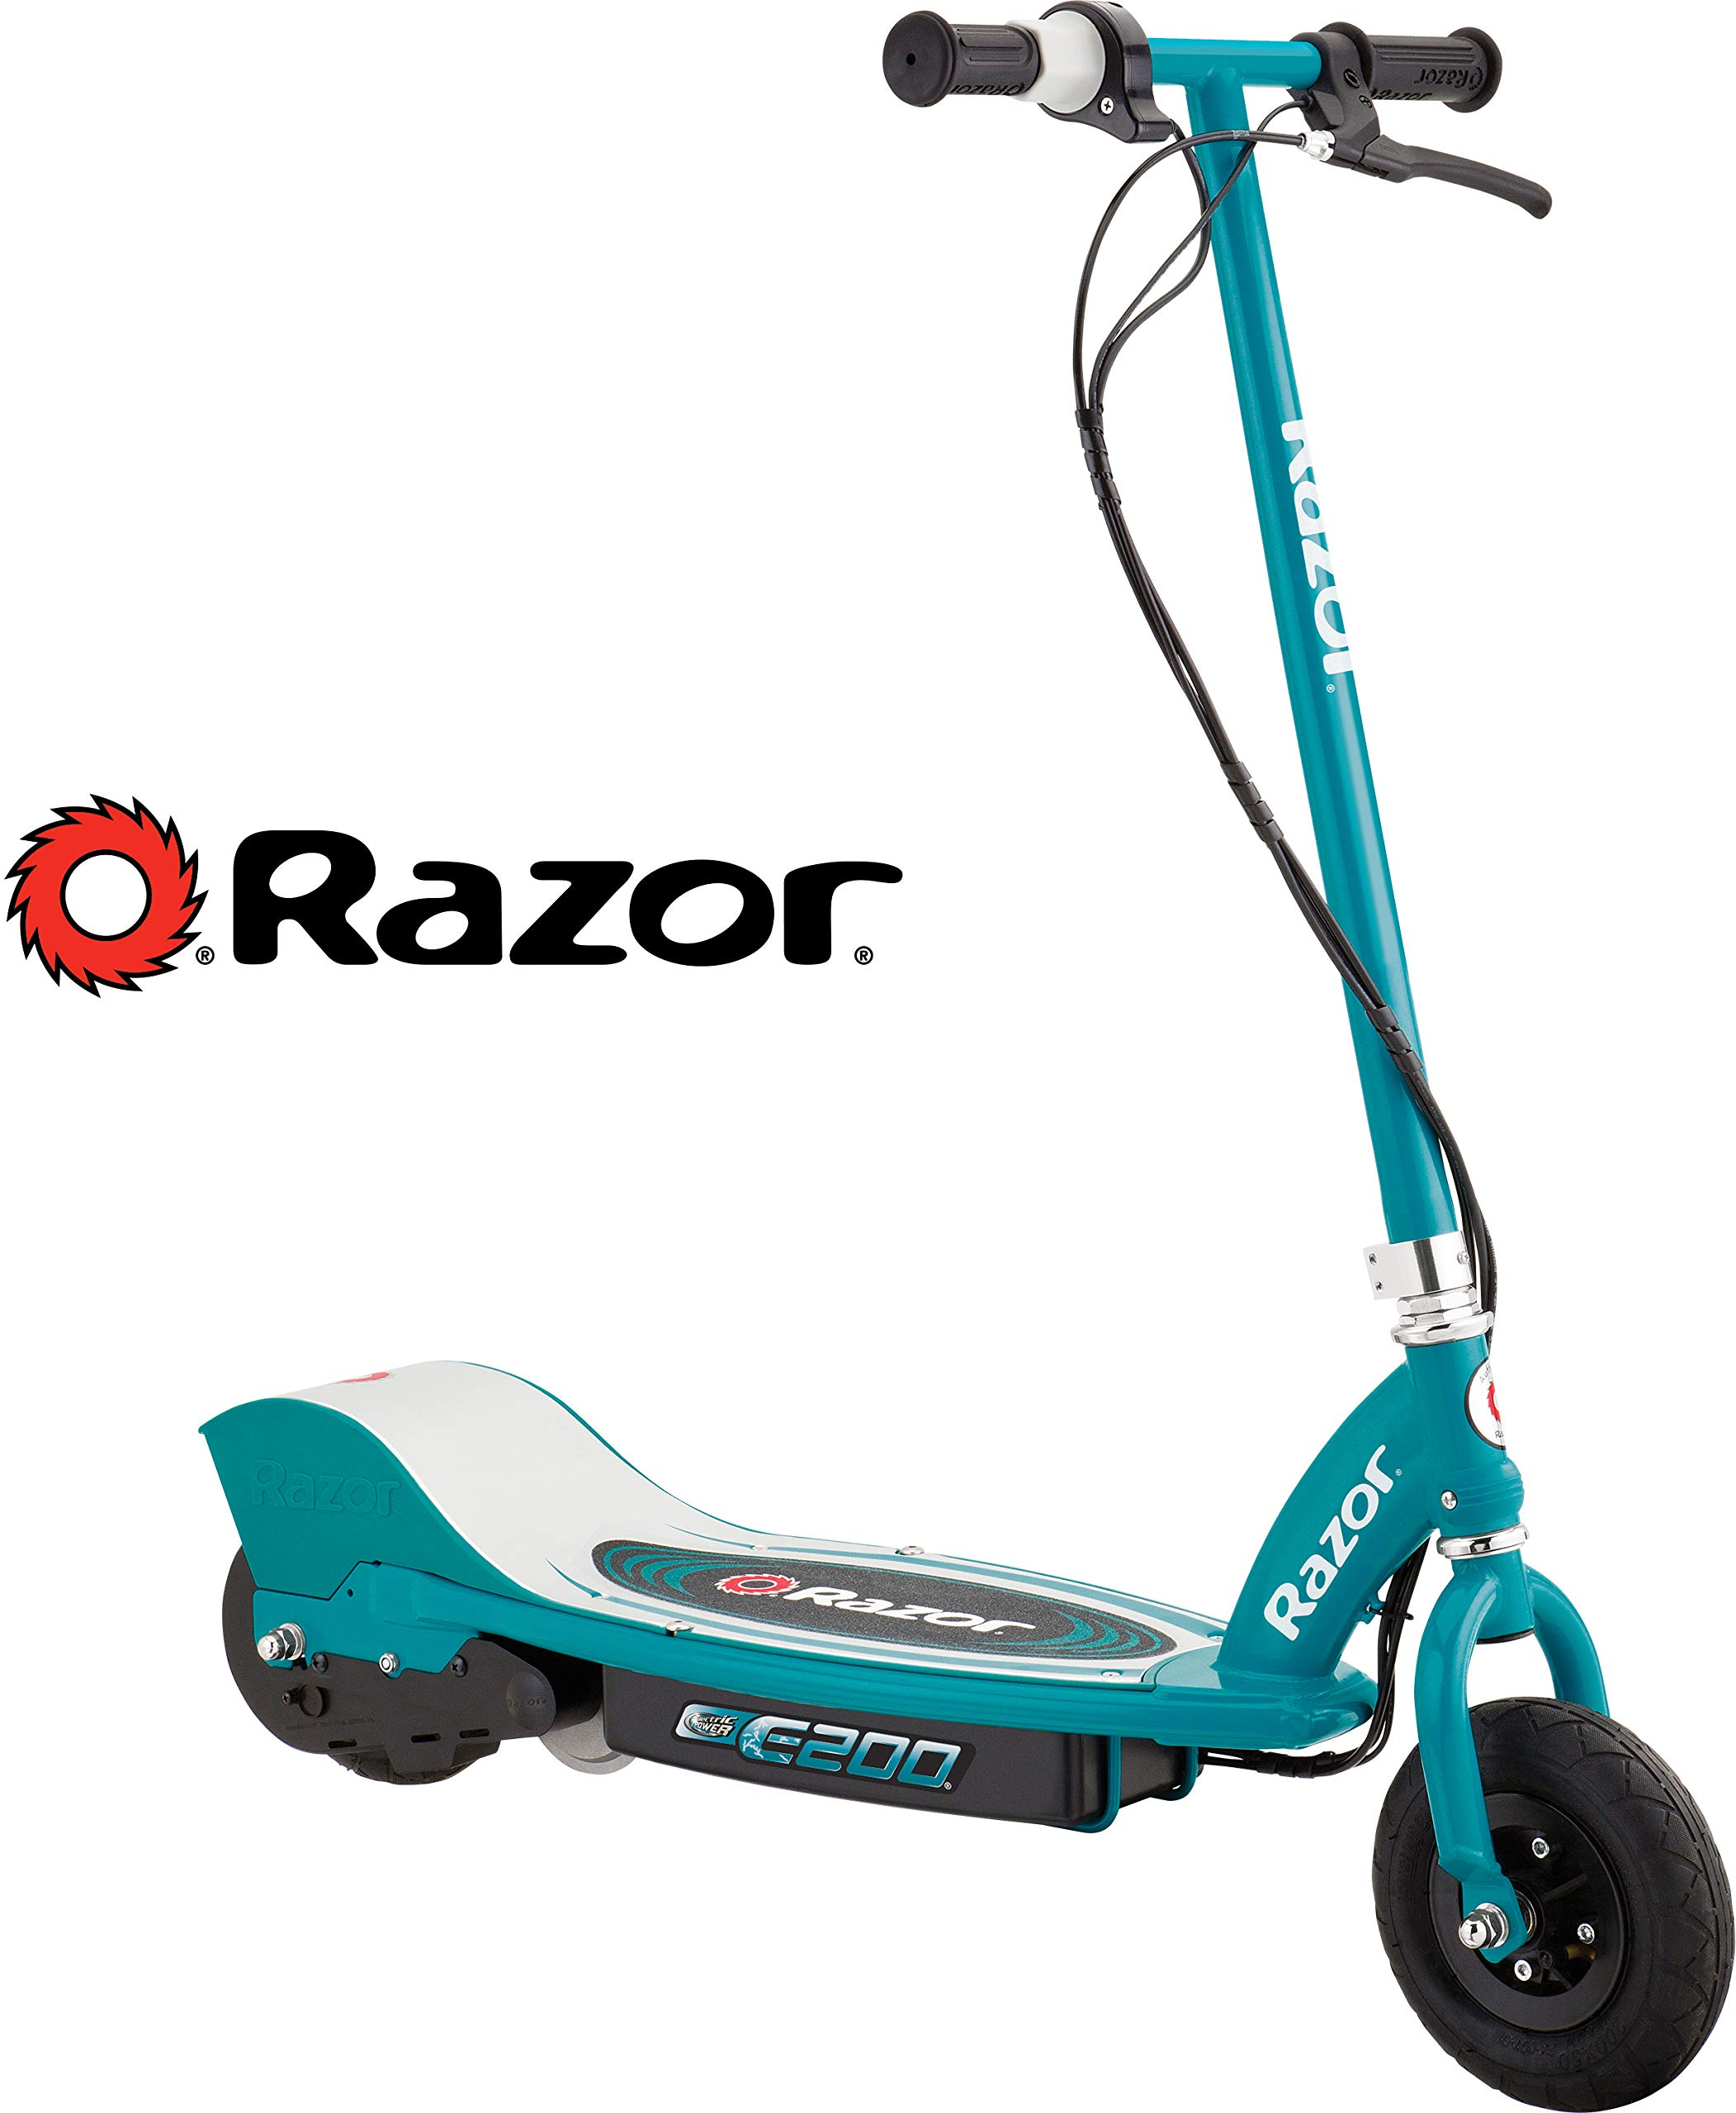 Razor E200 Electric Scooter - Teal by Razor